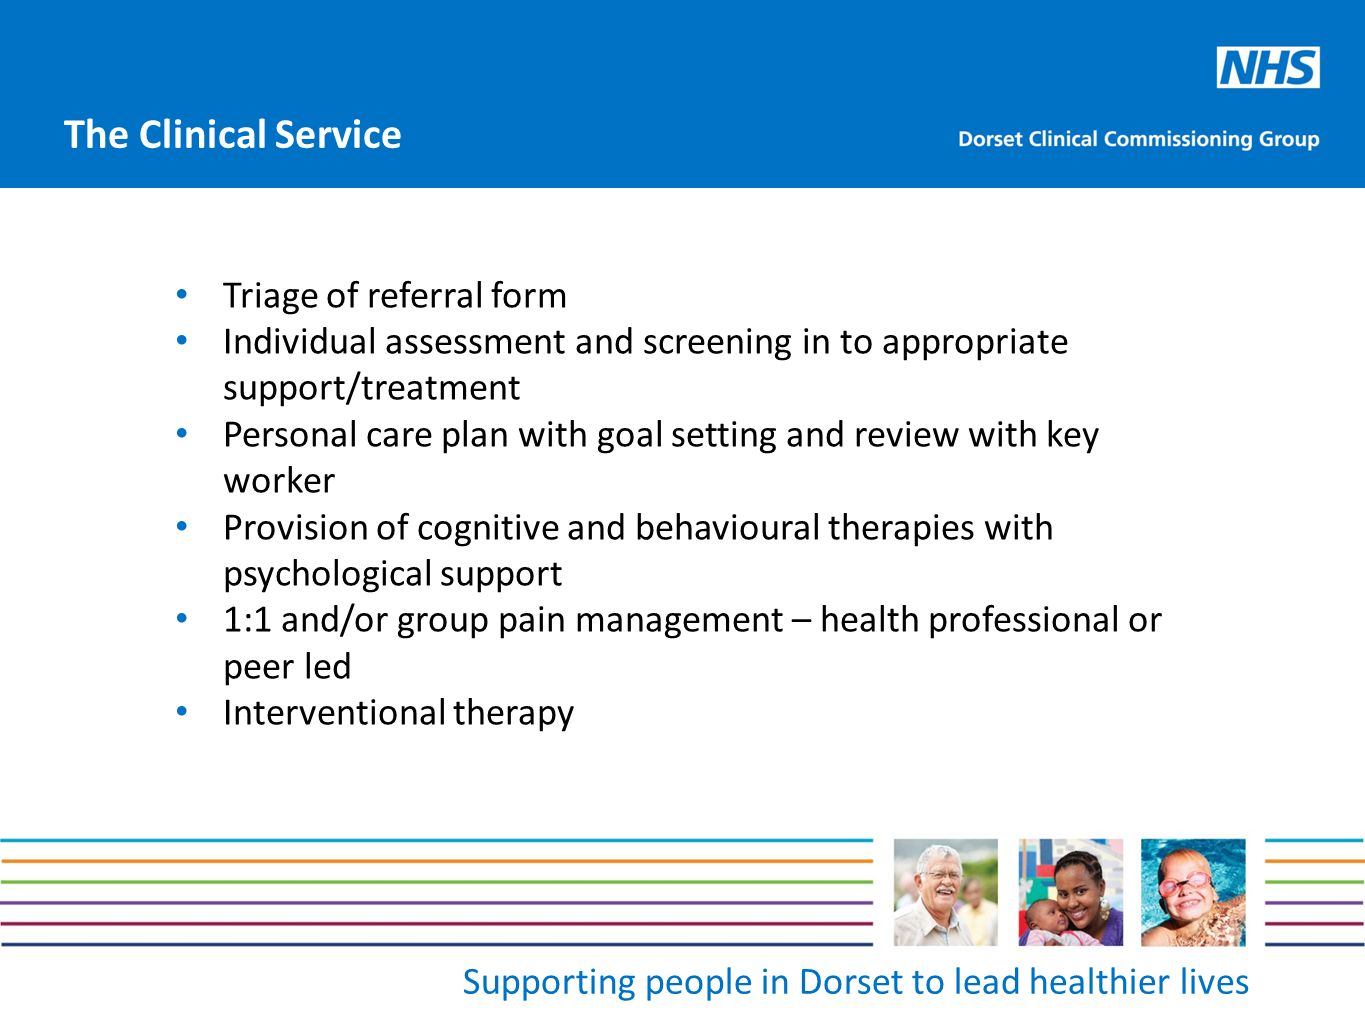 Supporting people in Dorset to lead healthier lives Triage of referral form Individual assessment and screening in to appropriate support/treatment Personal care plan with goal setting and review with key worker Provision of cognitive and behavioural therapies with psychological support 1:1 and/or group pain management – health professional or peer led Interventional therapy The Clinical Service